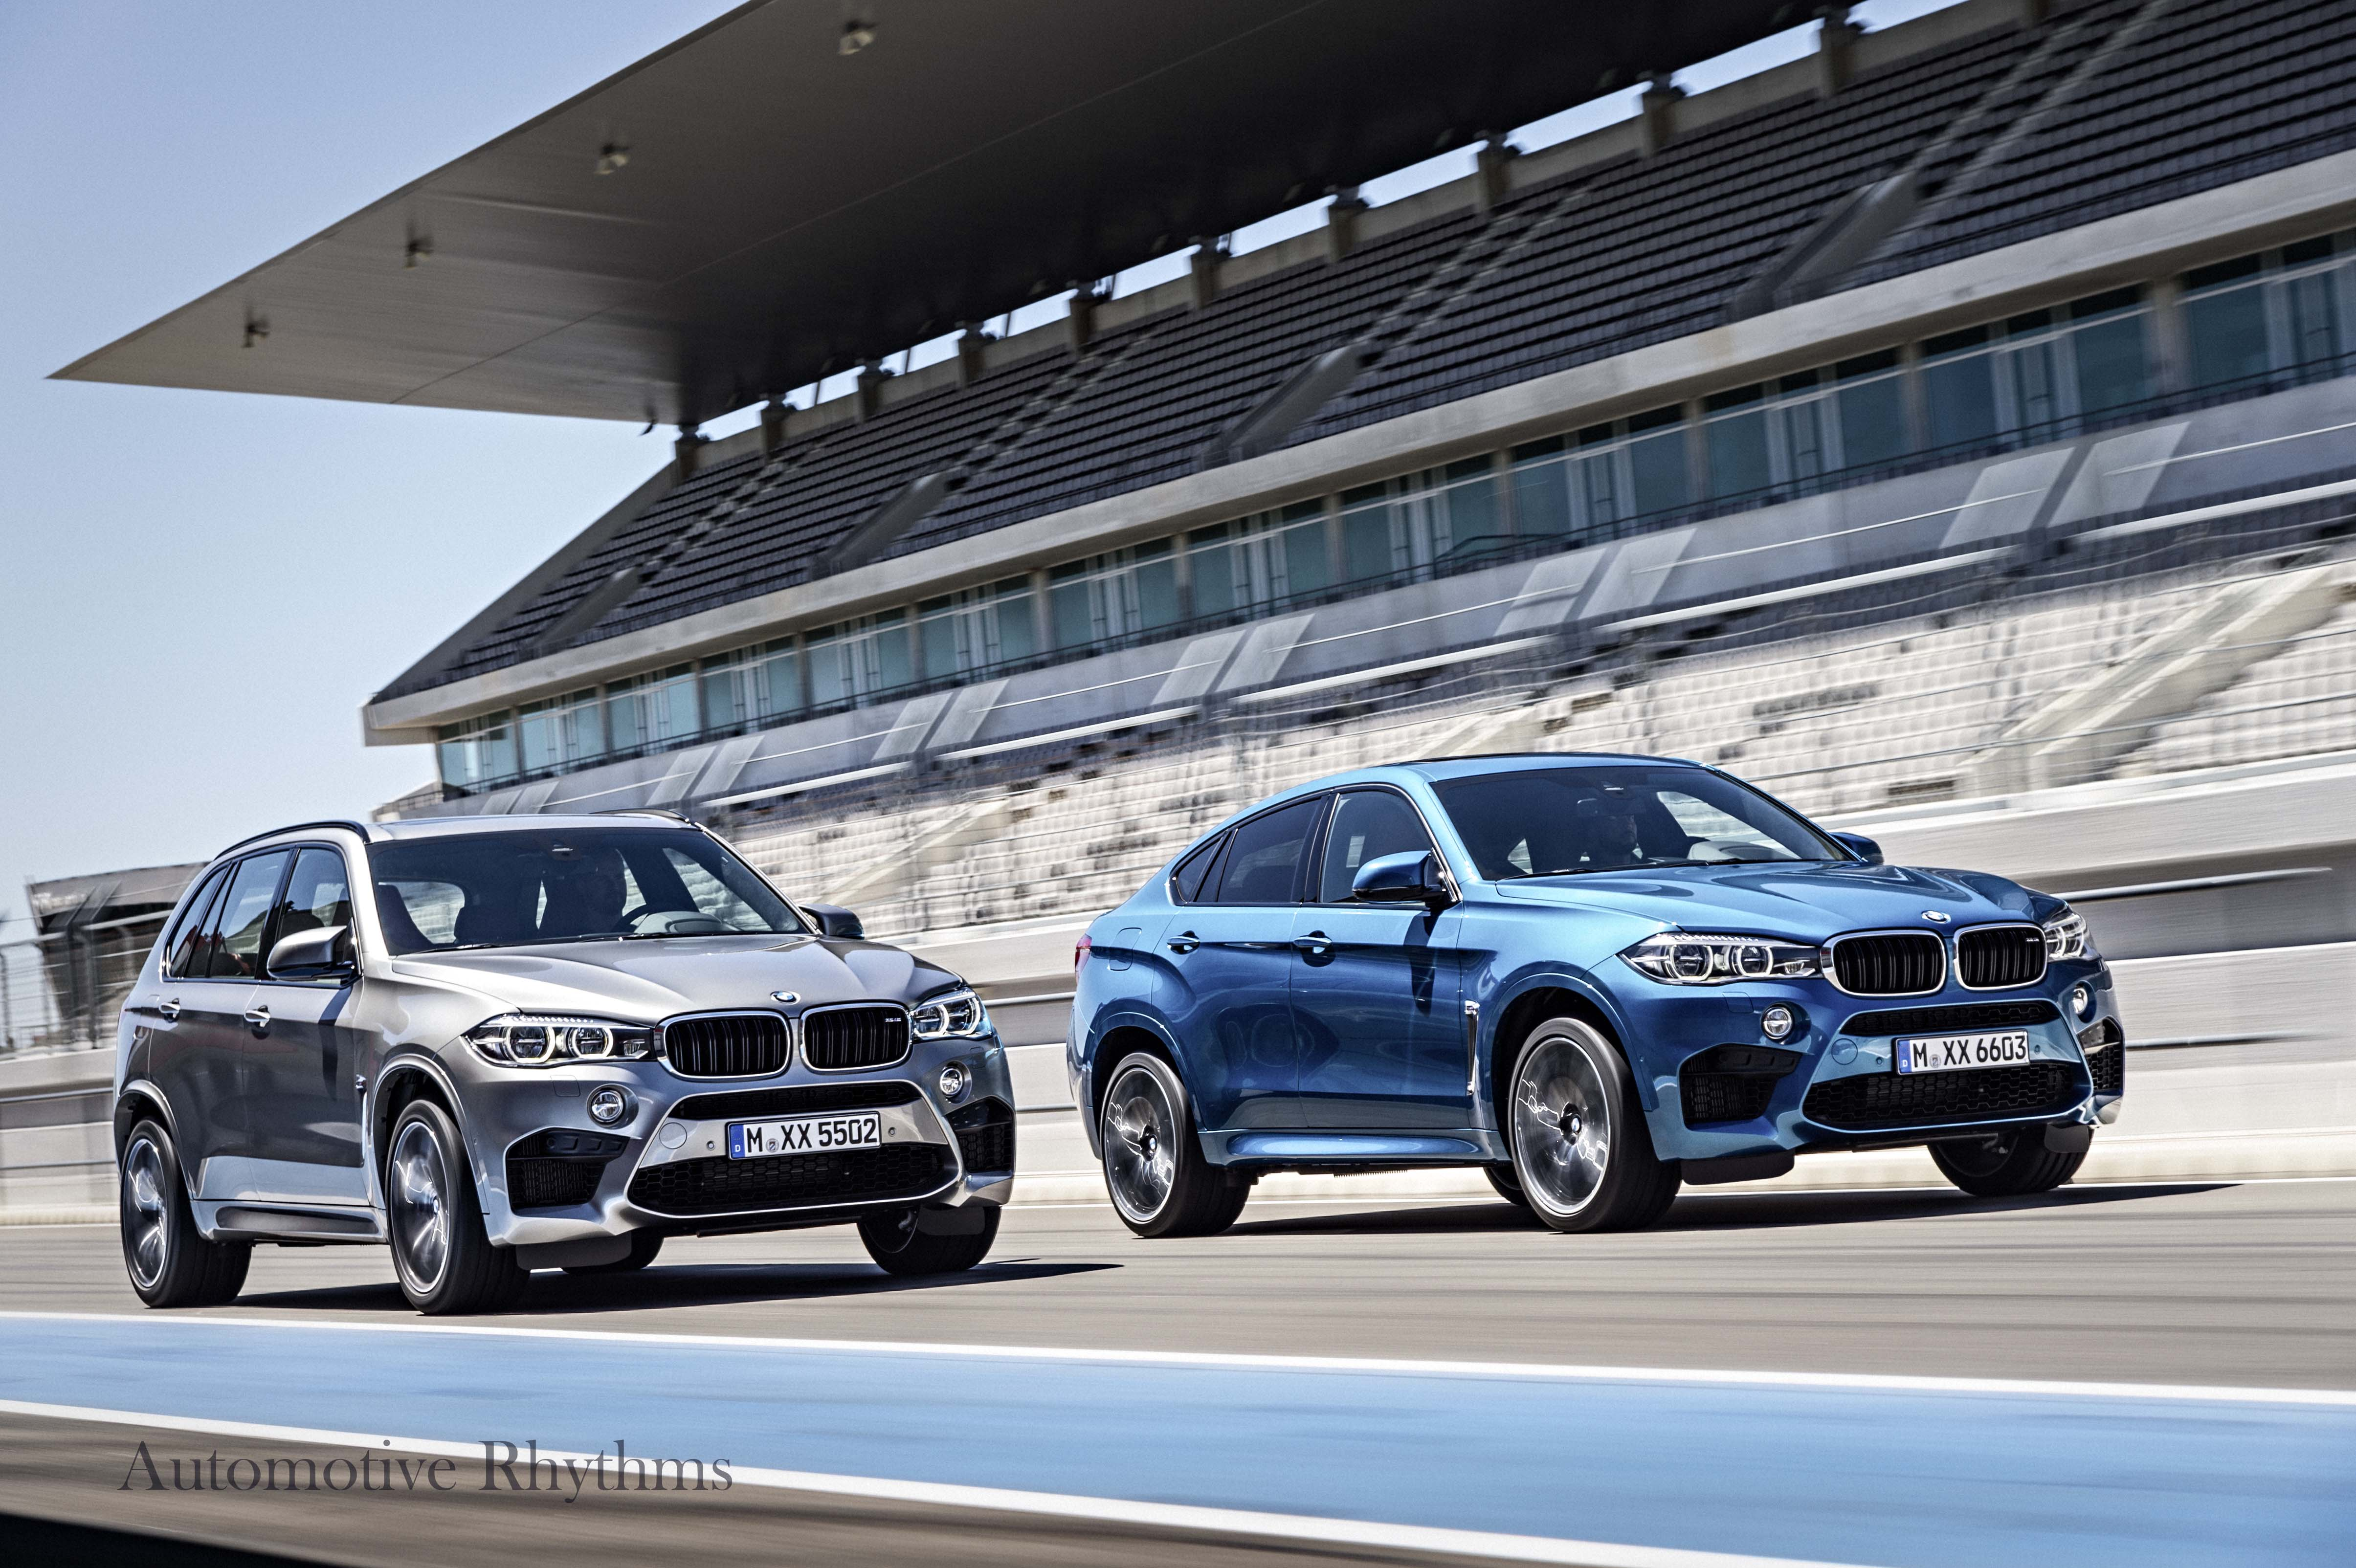 All New BMW X5 M and BMW X6 M